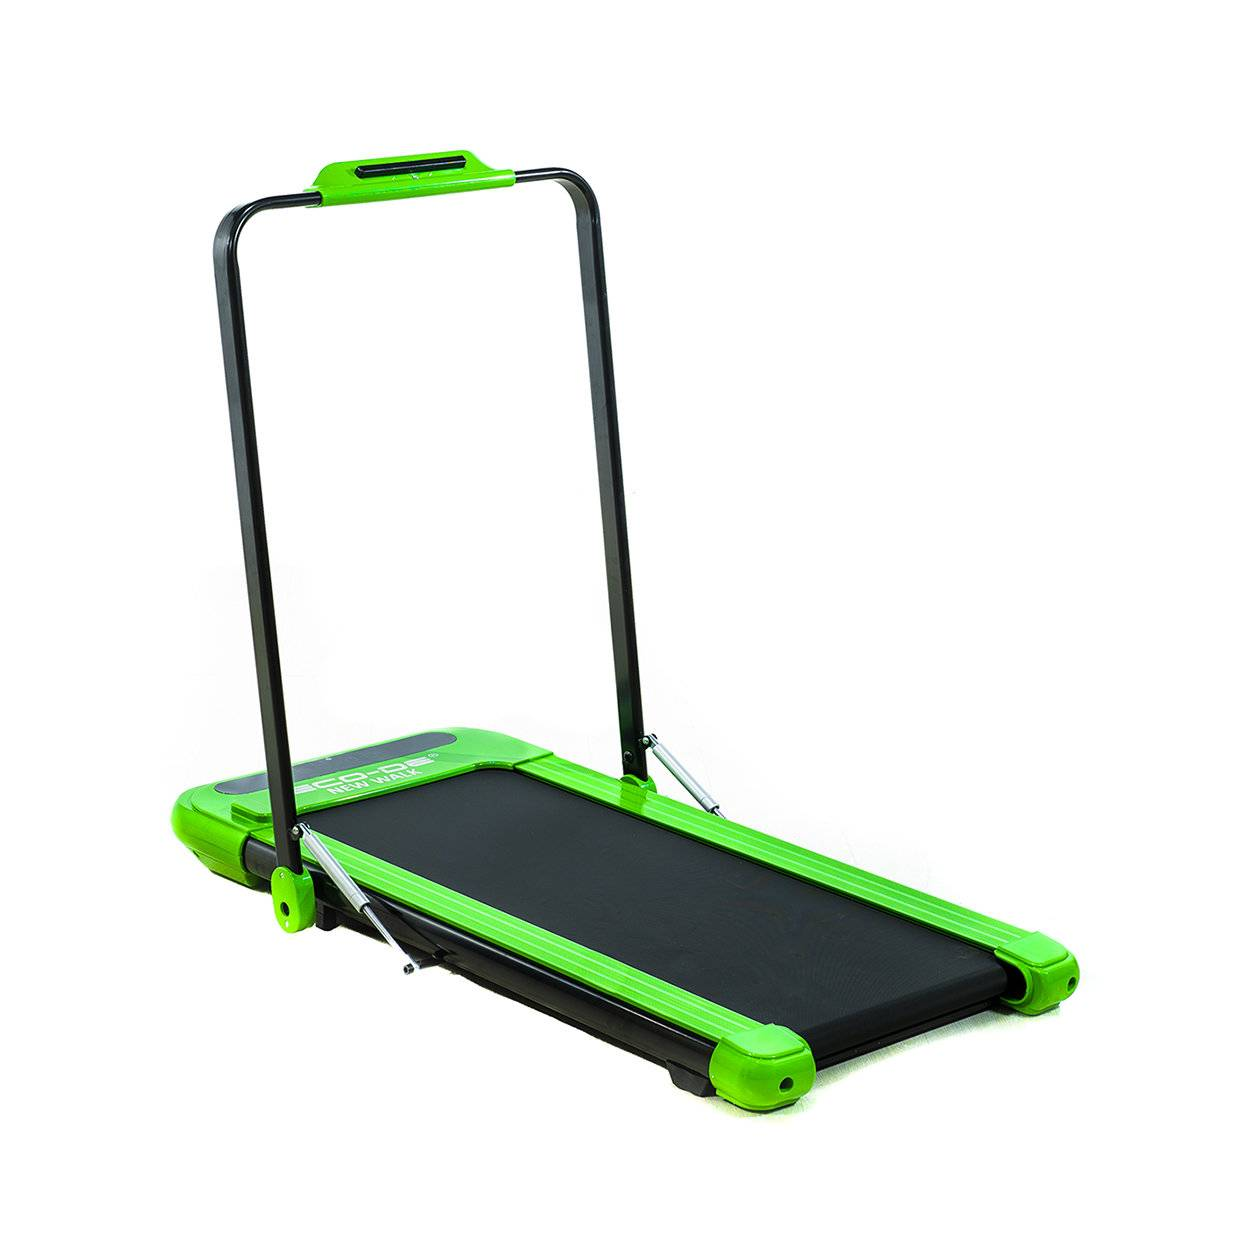 sport at home eco-2575 new walk - tapis roulant pieghevole